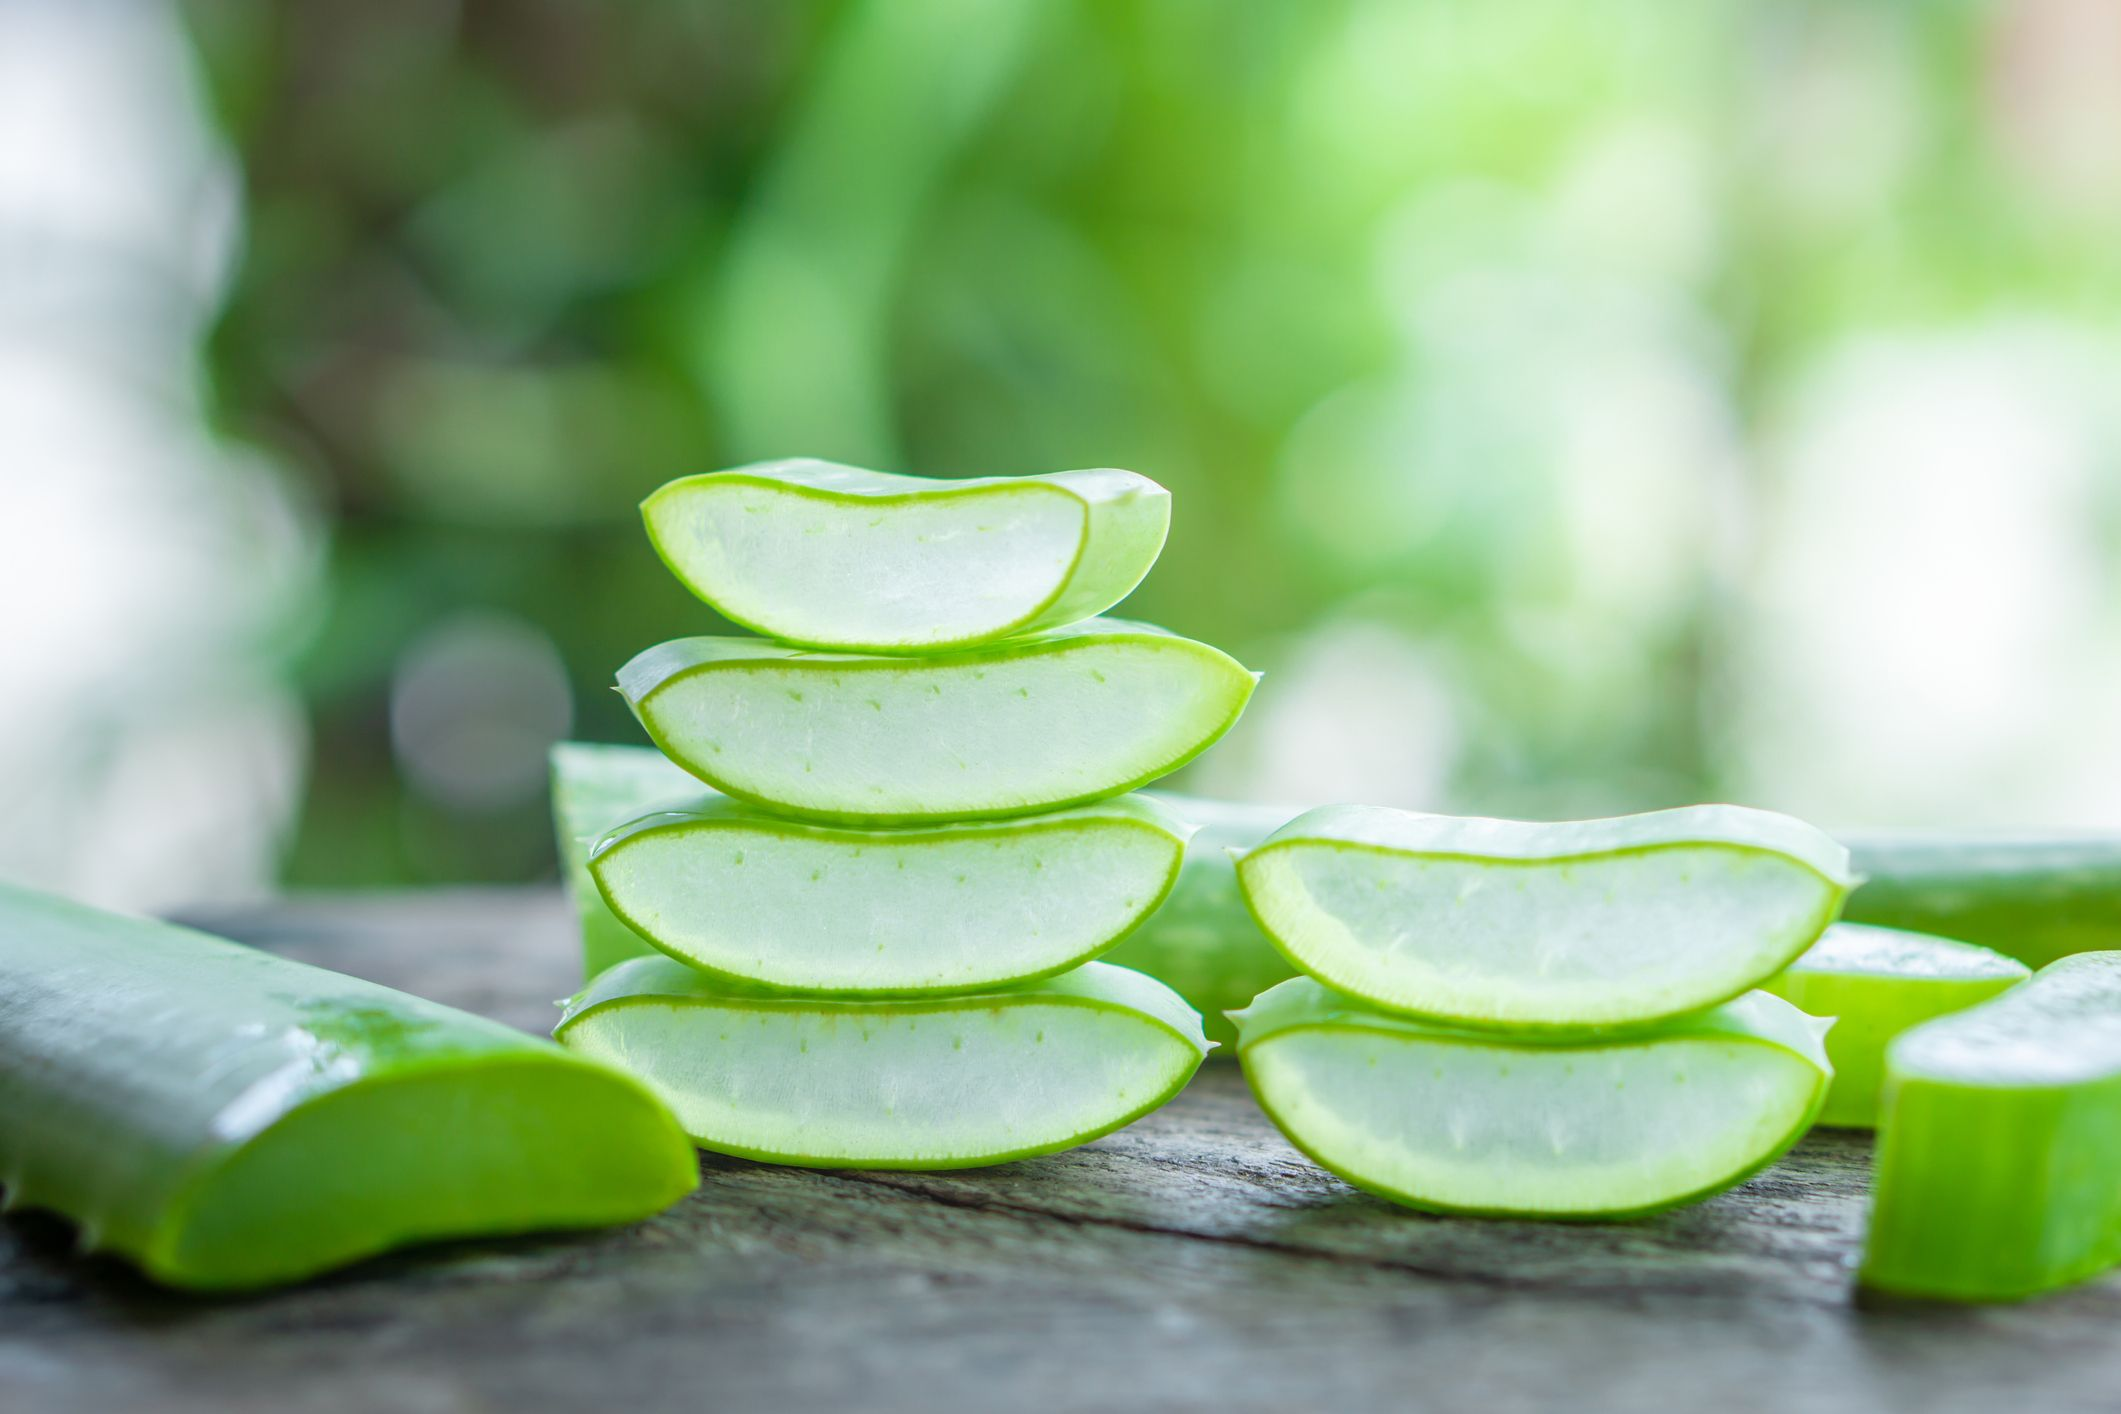 8 Benefits of Aloe Vera for Skin, According to Dermatologists